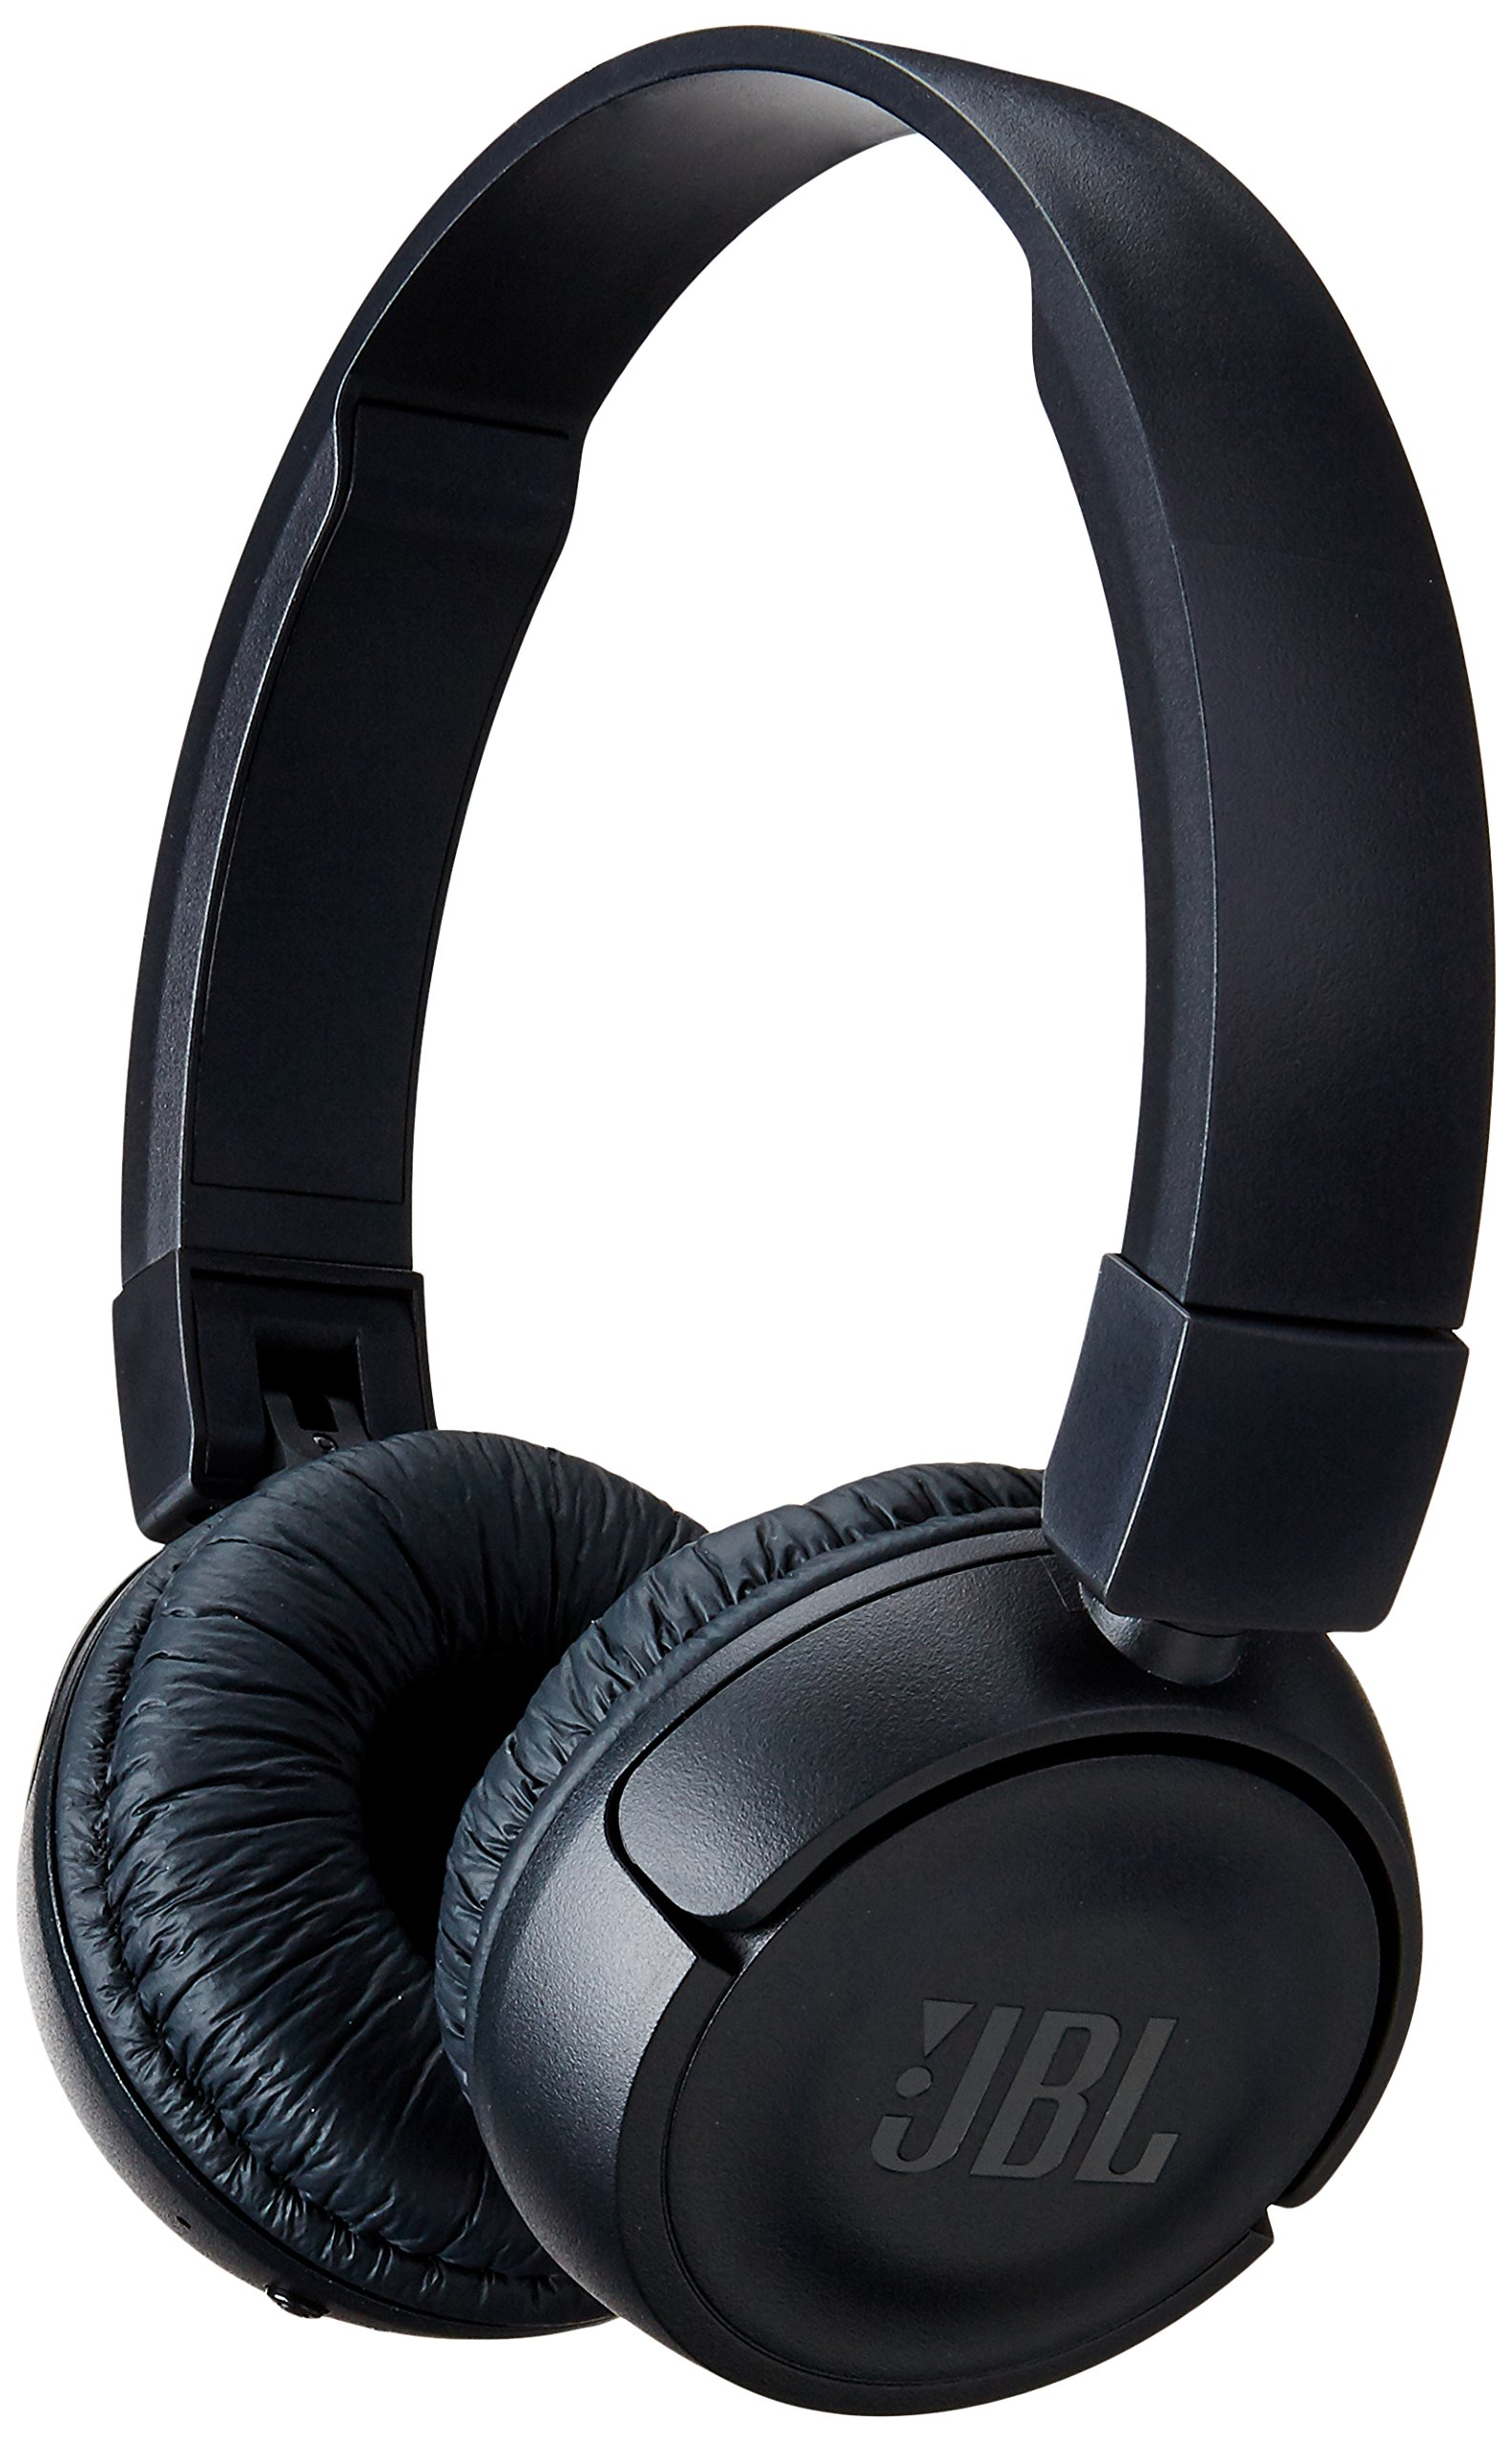 JBL T450BT Wireless On-Ear Headphones with Built-in Remote and Microphone (Black) by JBL